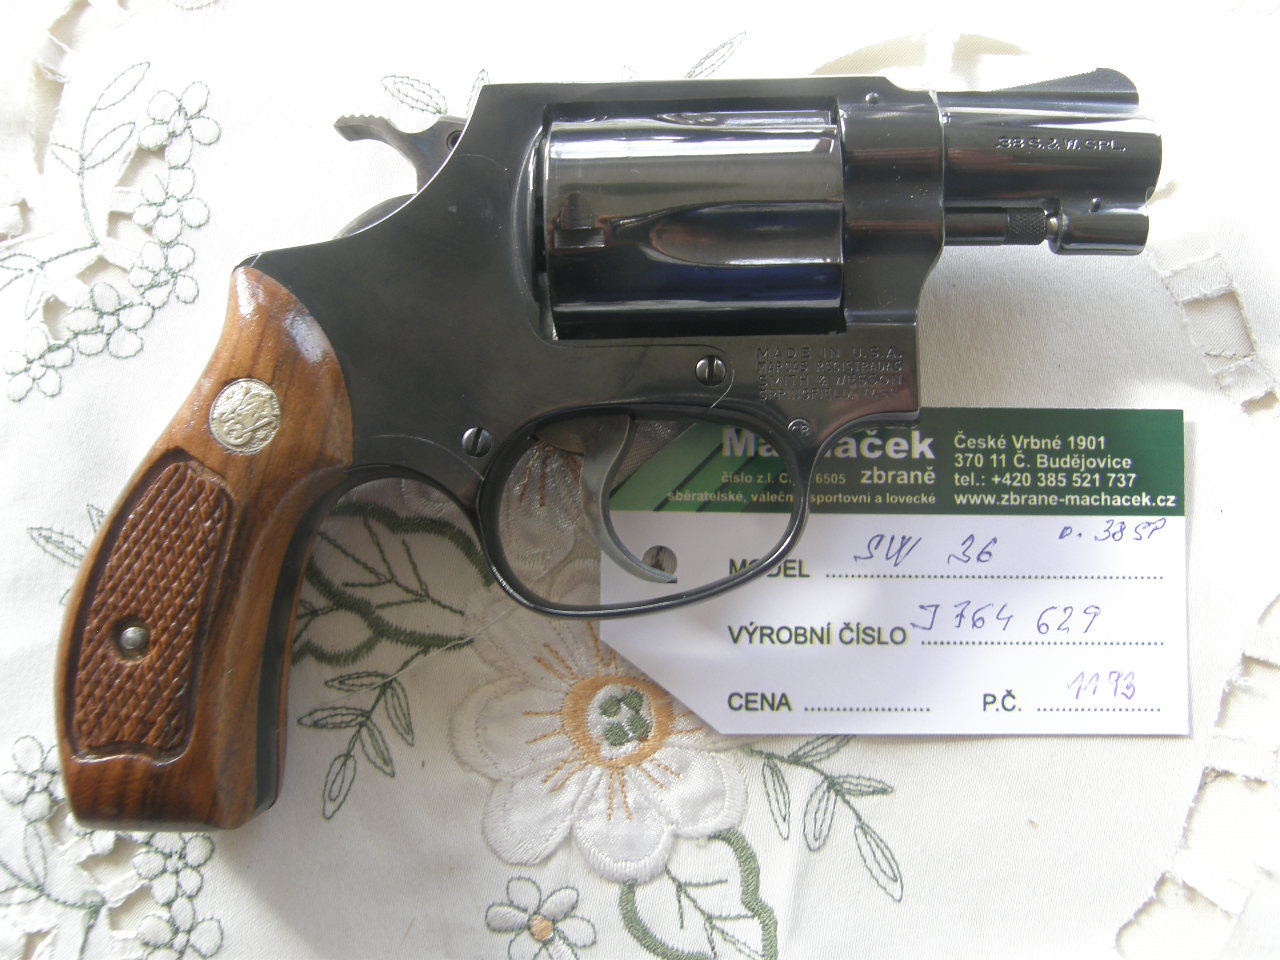 Revolver Smith Wesson Mod. 36 v.č. J764629 r. 38 Sp